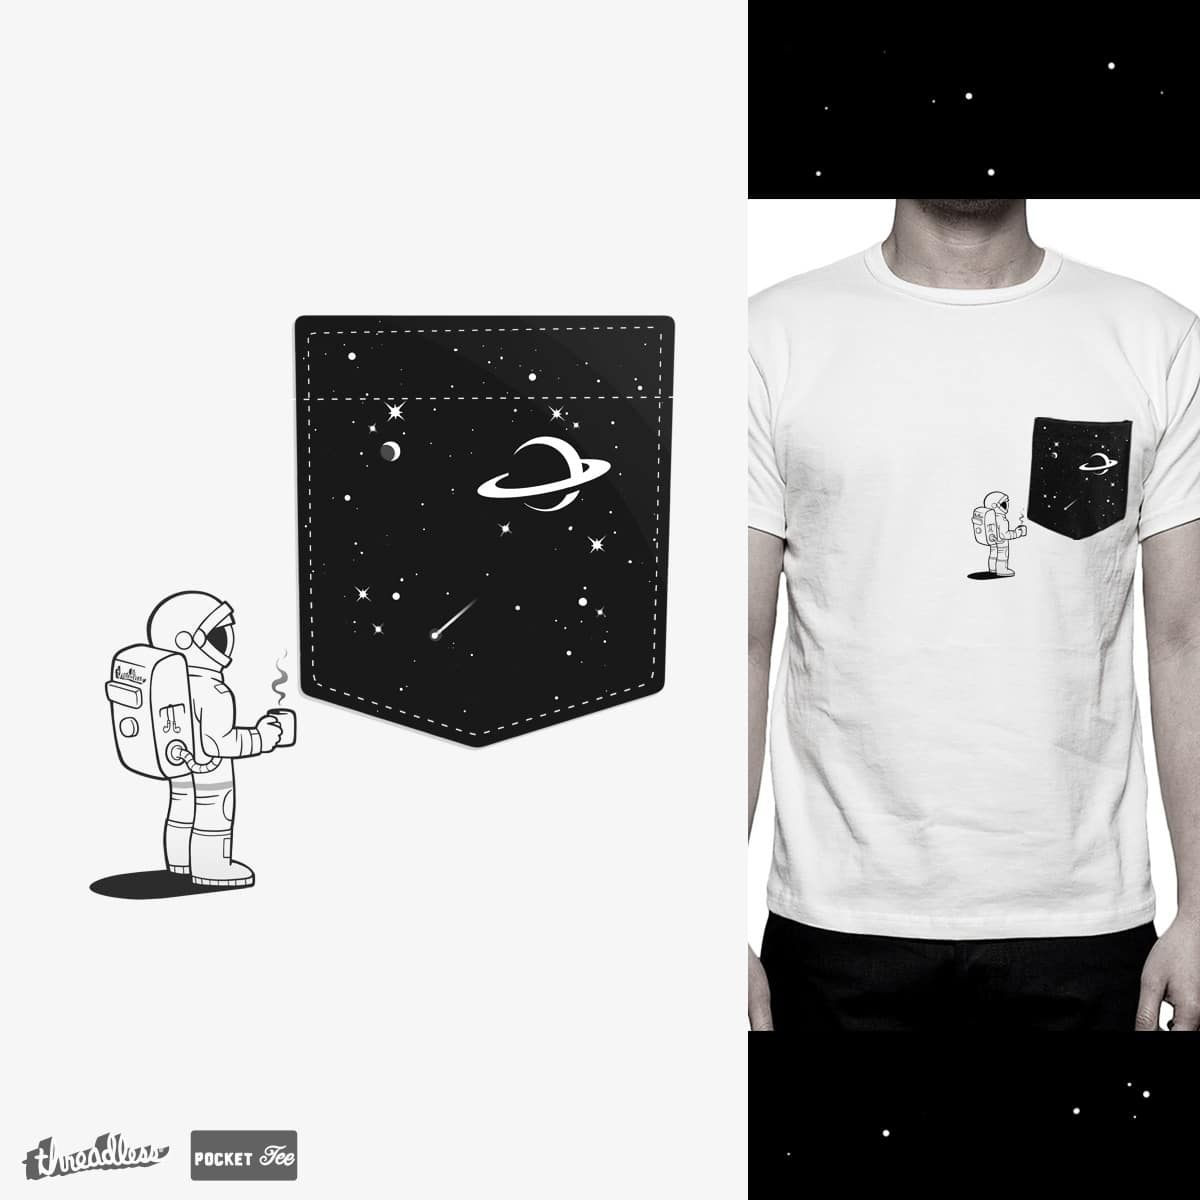 After a Space Mission by mo_ho on Threadless